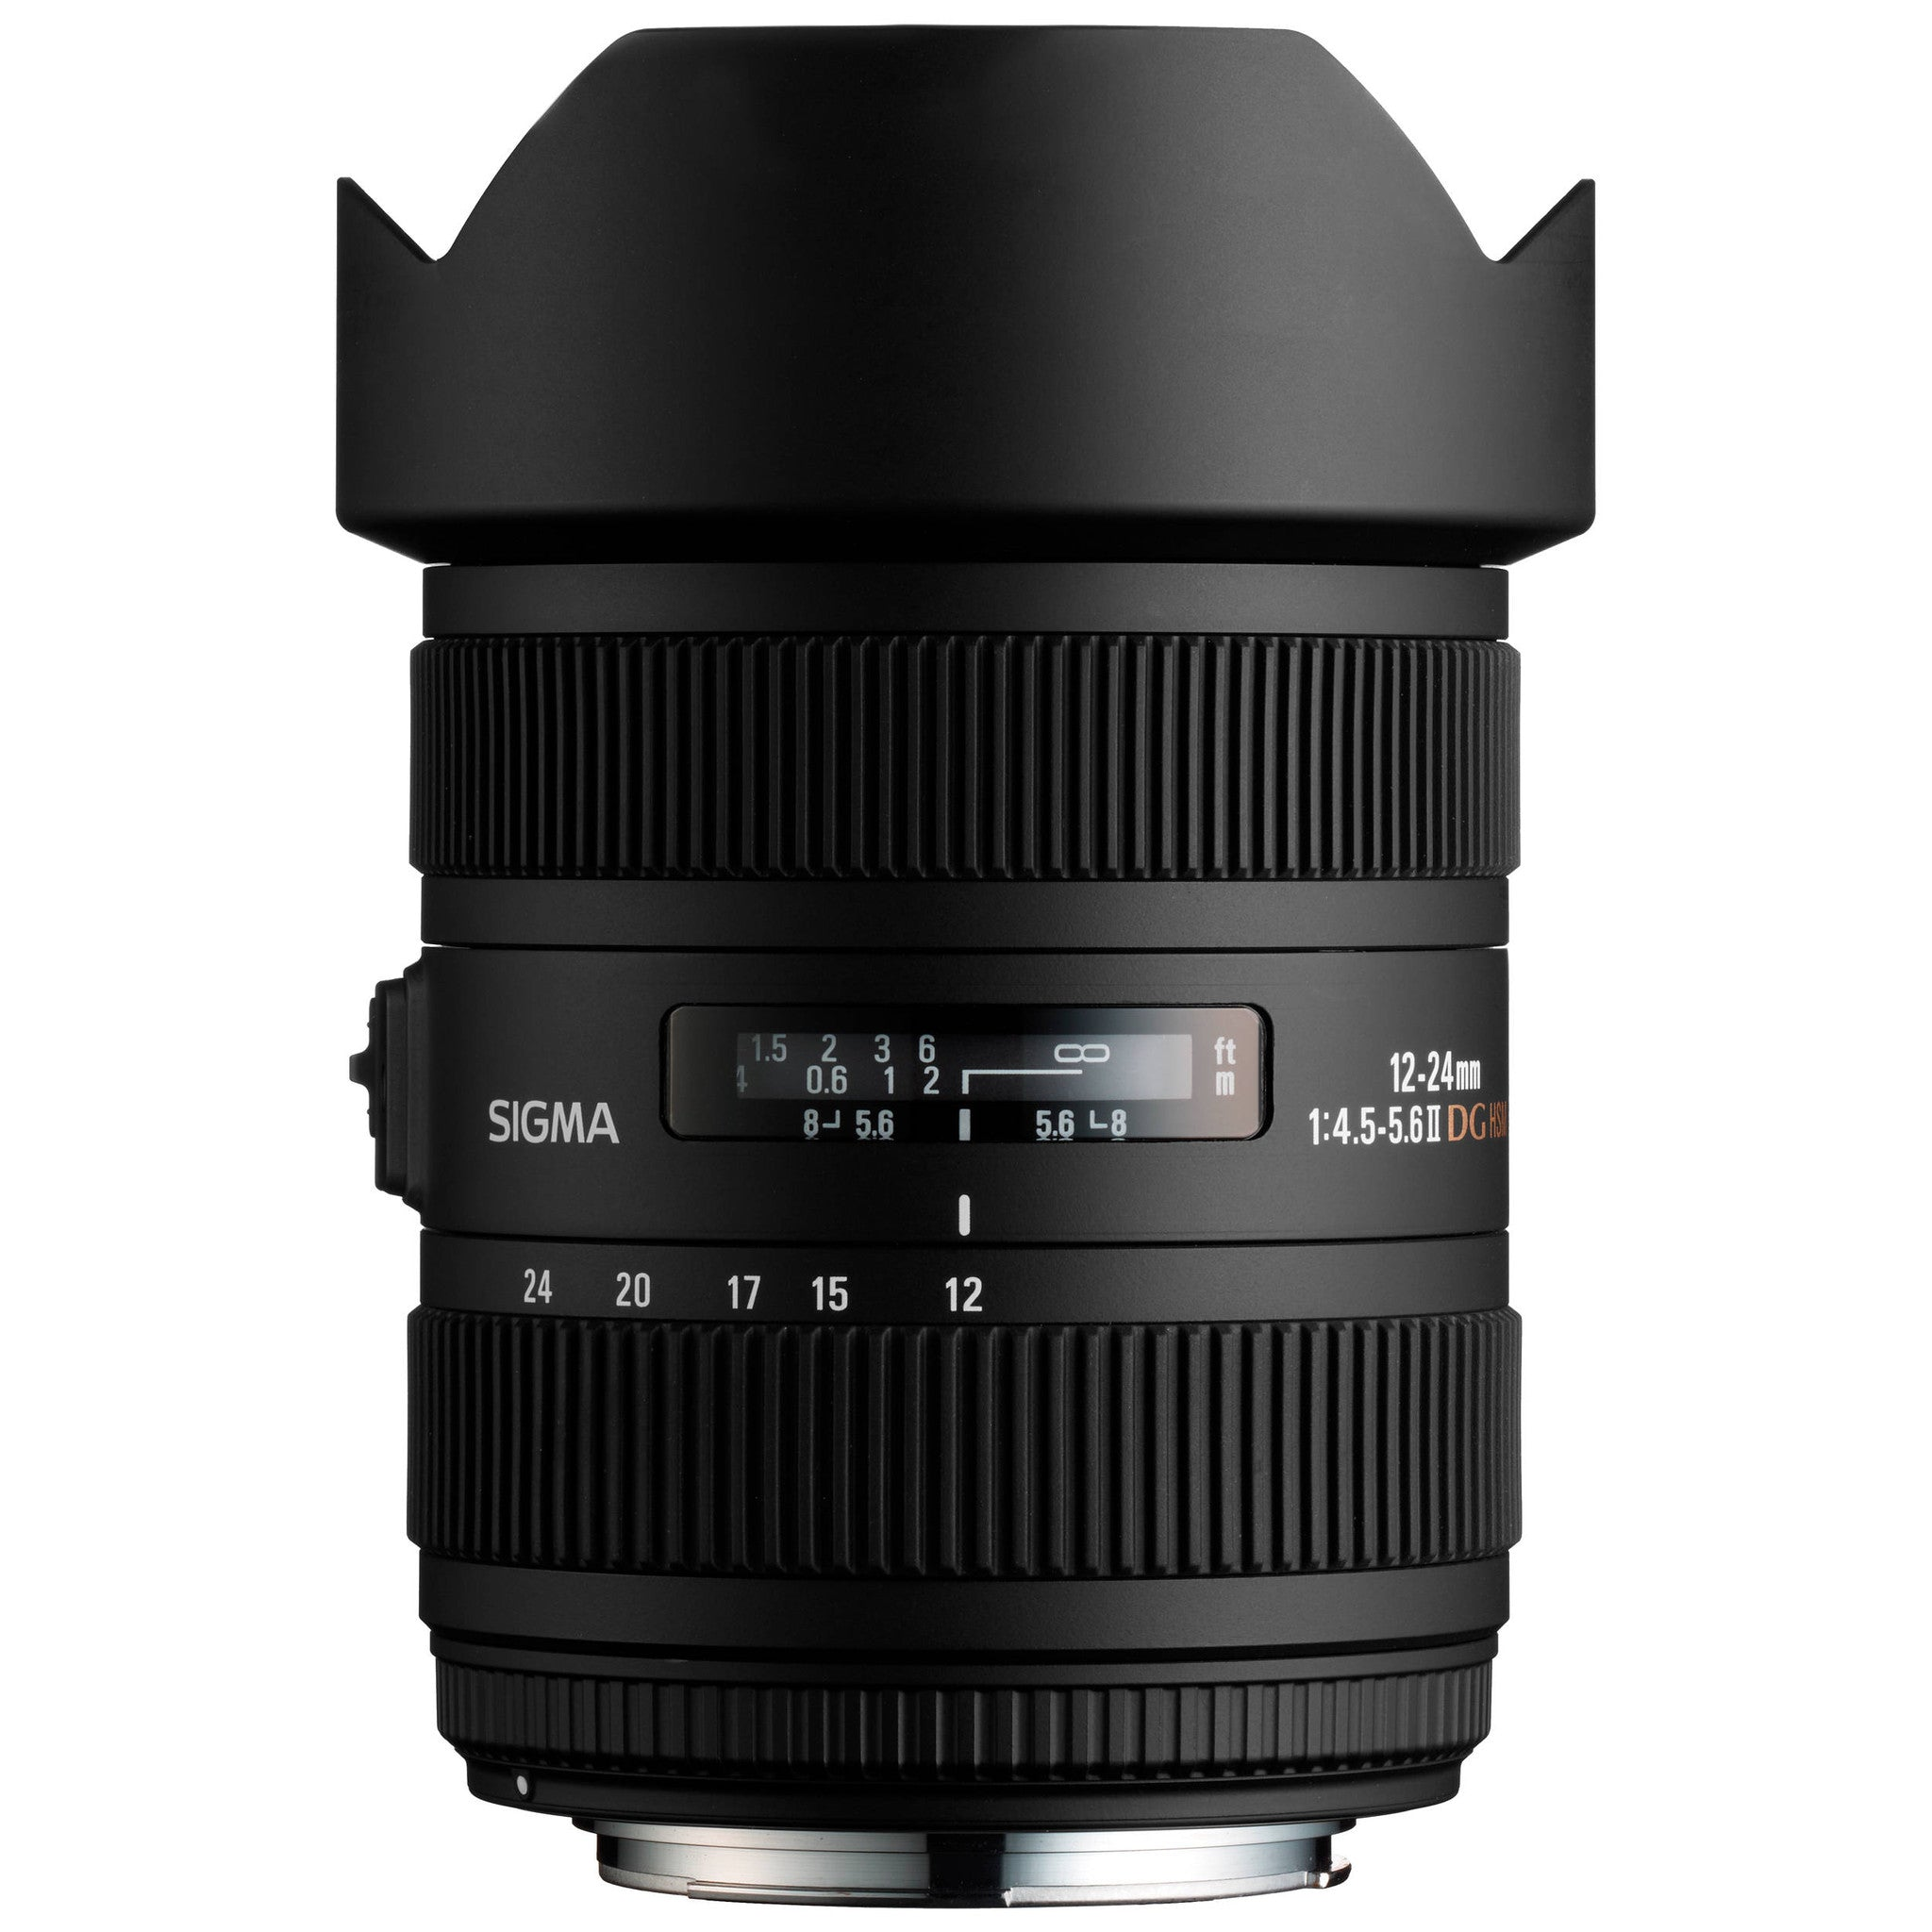 Sigma 12-24mm F4.5-5.6 II DG ASP-HSM (Canon) - Photo-Video - Sigma - Helix Camera